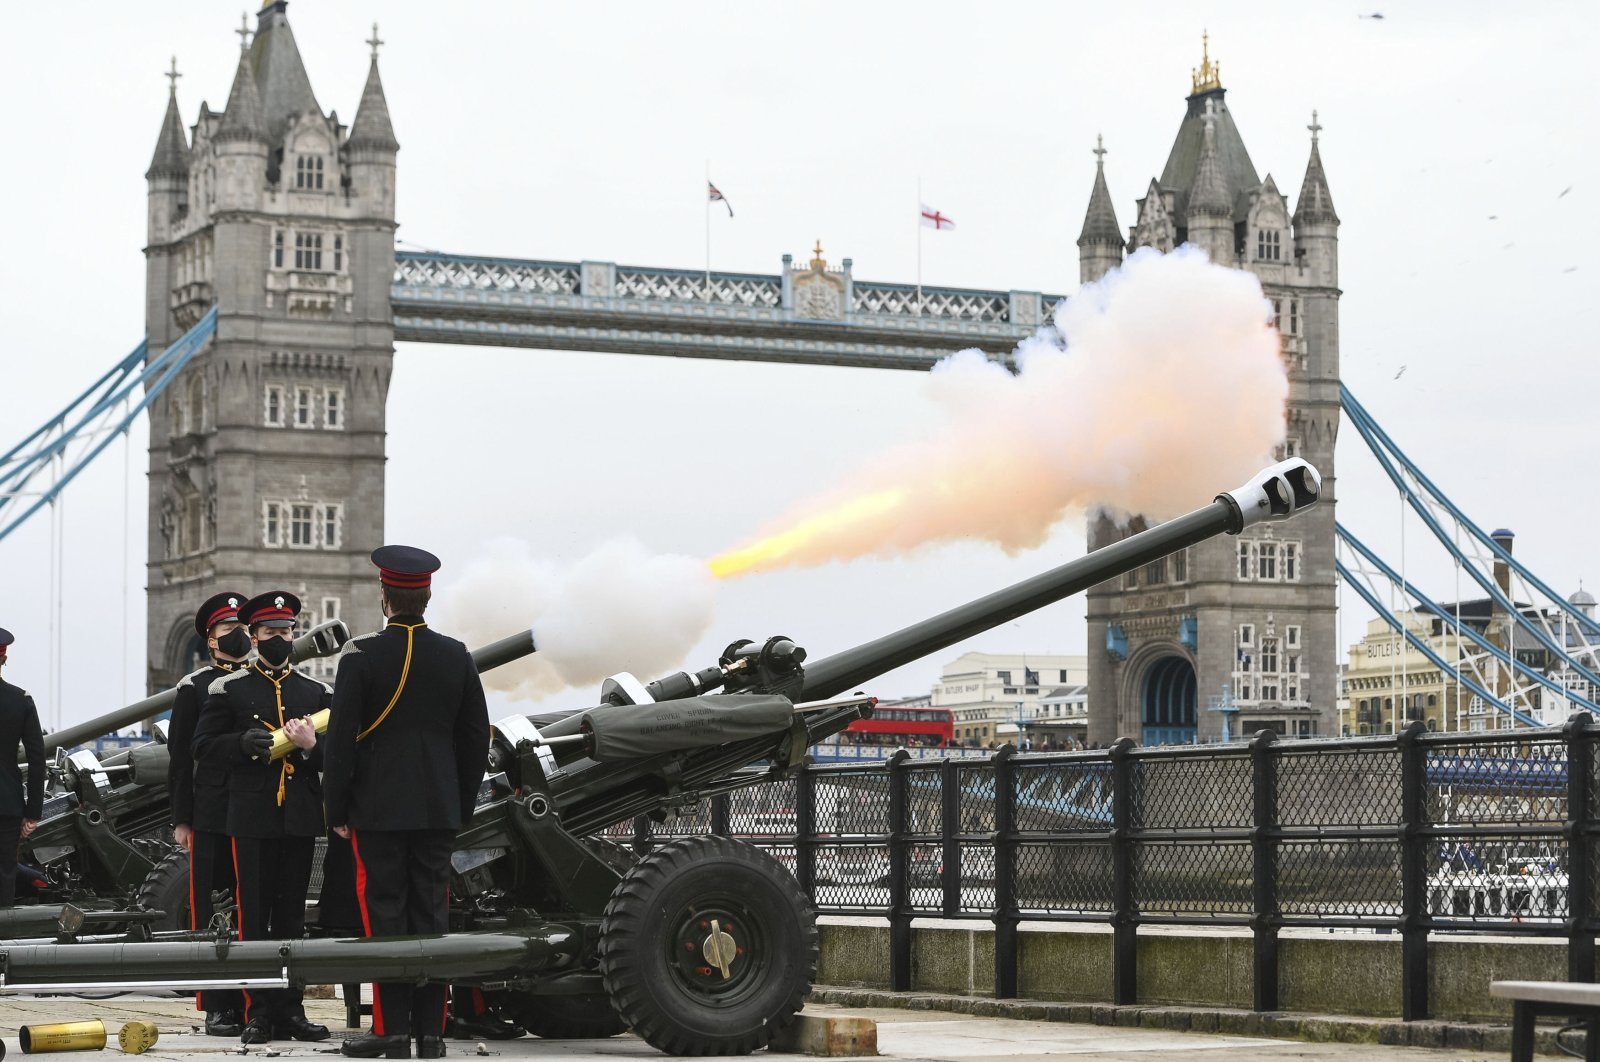 Members of the Honourable Artillery Company fire a 41-round gun salute from the wharf at the Tower of London, to mark the death of Prince Philip, London, U.K., Saturday, April 10, 2021. (PA via AP)